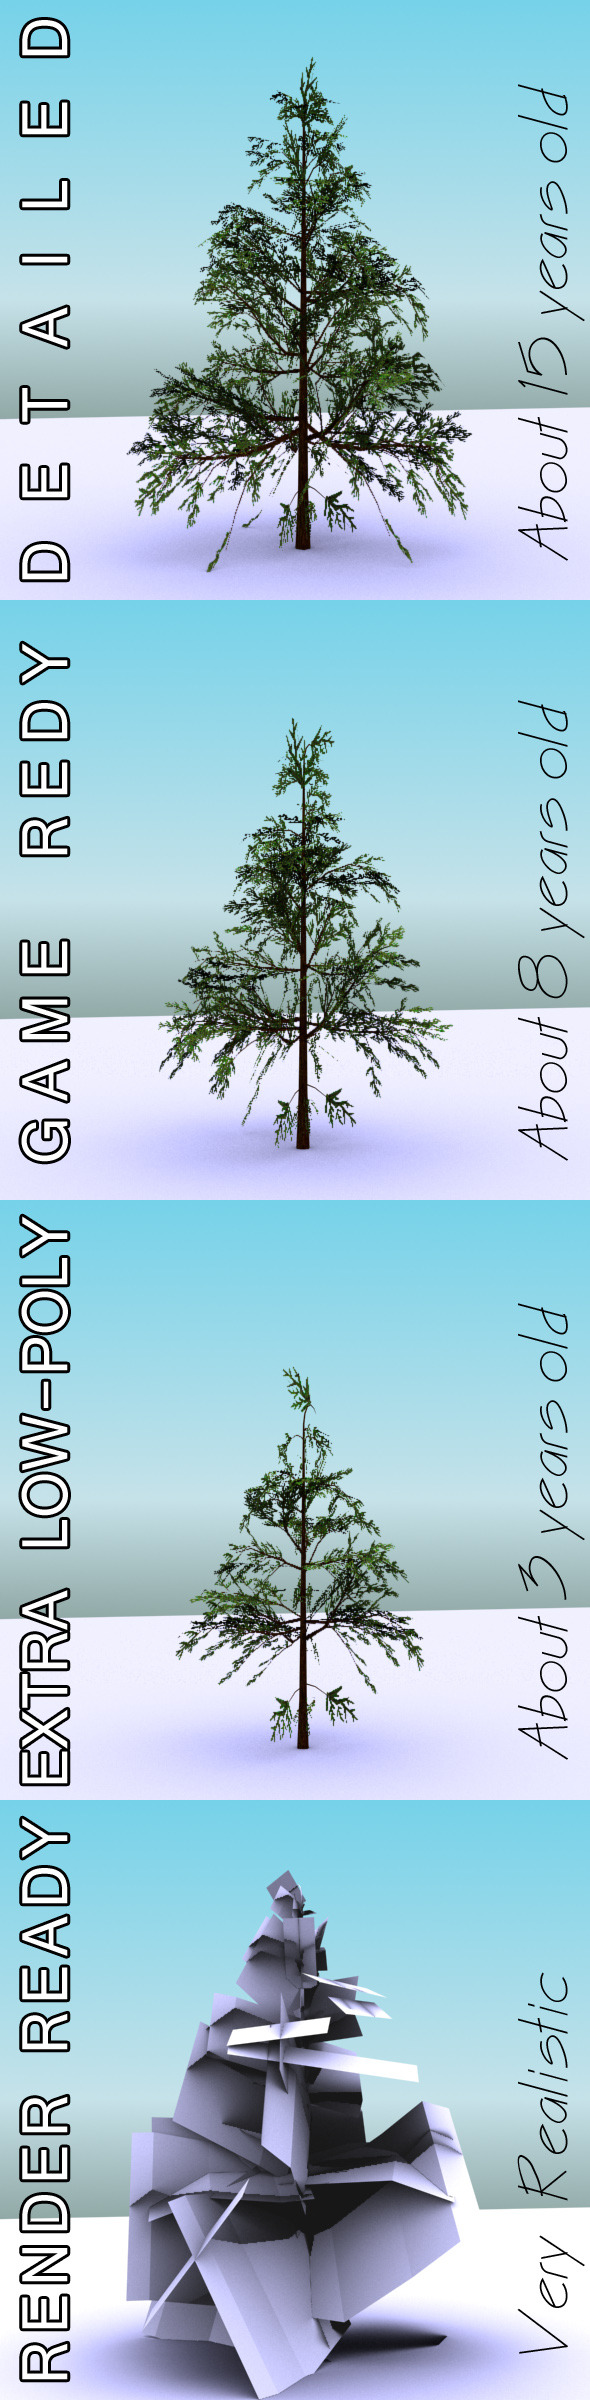 GameReady Low Poly Tree Pack 1 (Lawson's Cypress) - 3DOcean Item for Sale